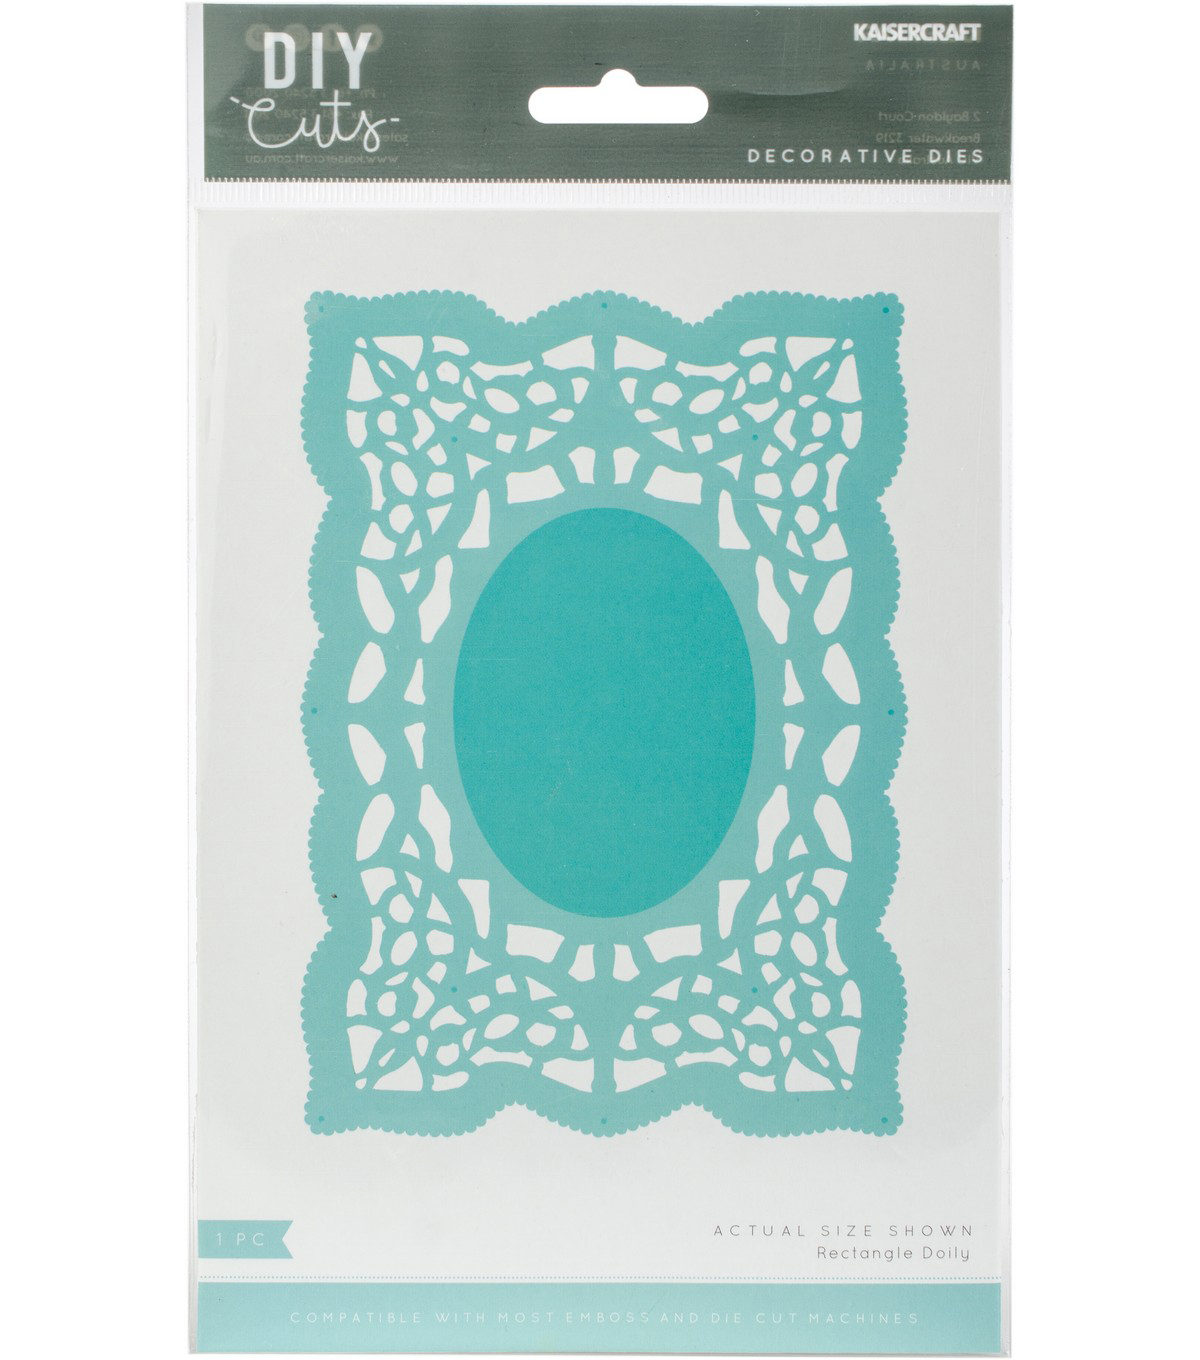 Kaisercraft DIY Cuts 4\u0027\u0027x5.75\u0027\u0027 Decorative Die-Rectangle Doily